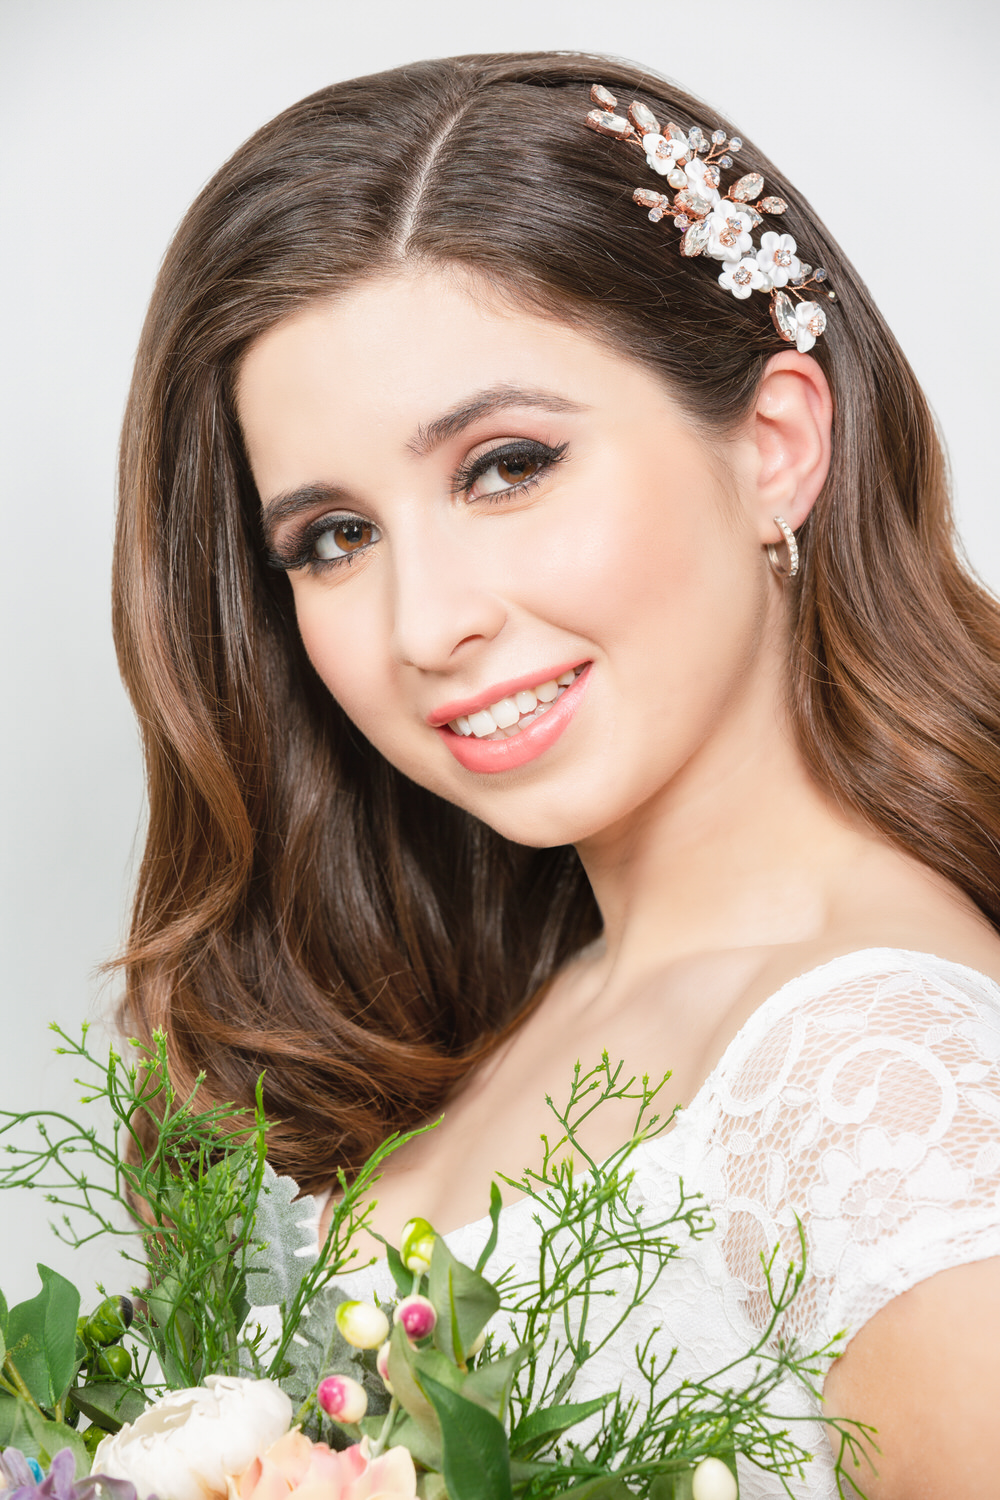 Brunette model with hair clip in her hair holding flowers